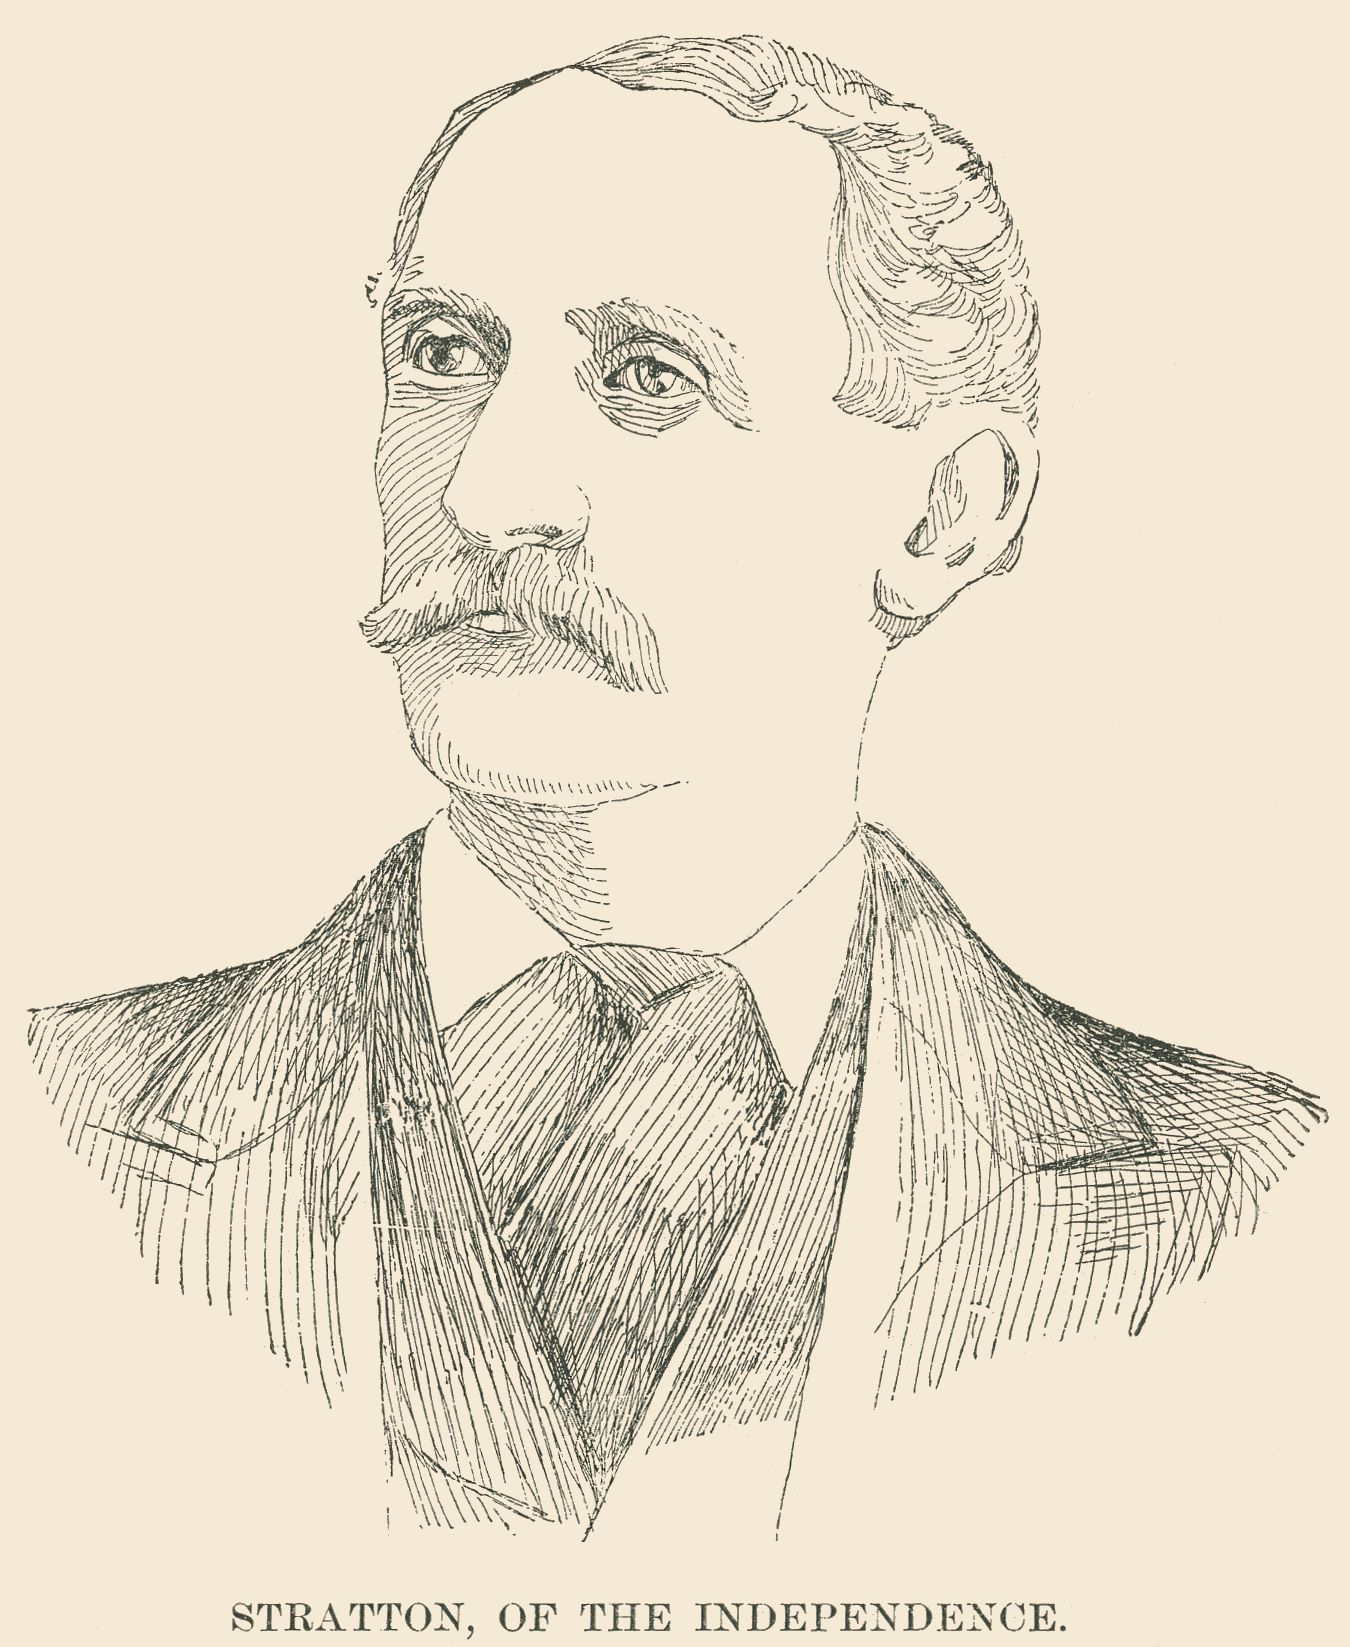 Line drawing of W.S. Stratton